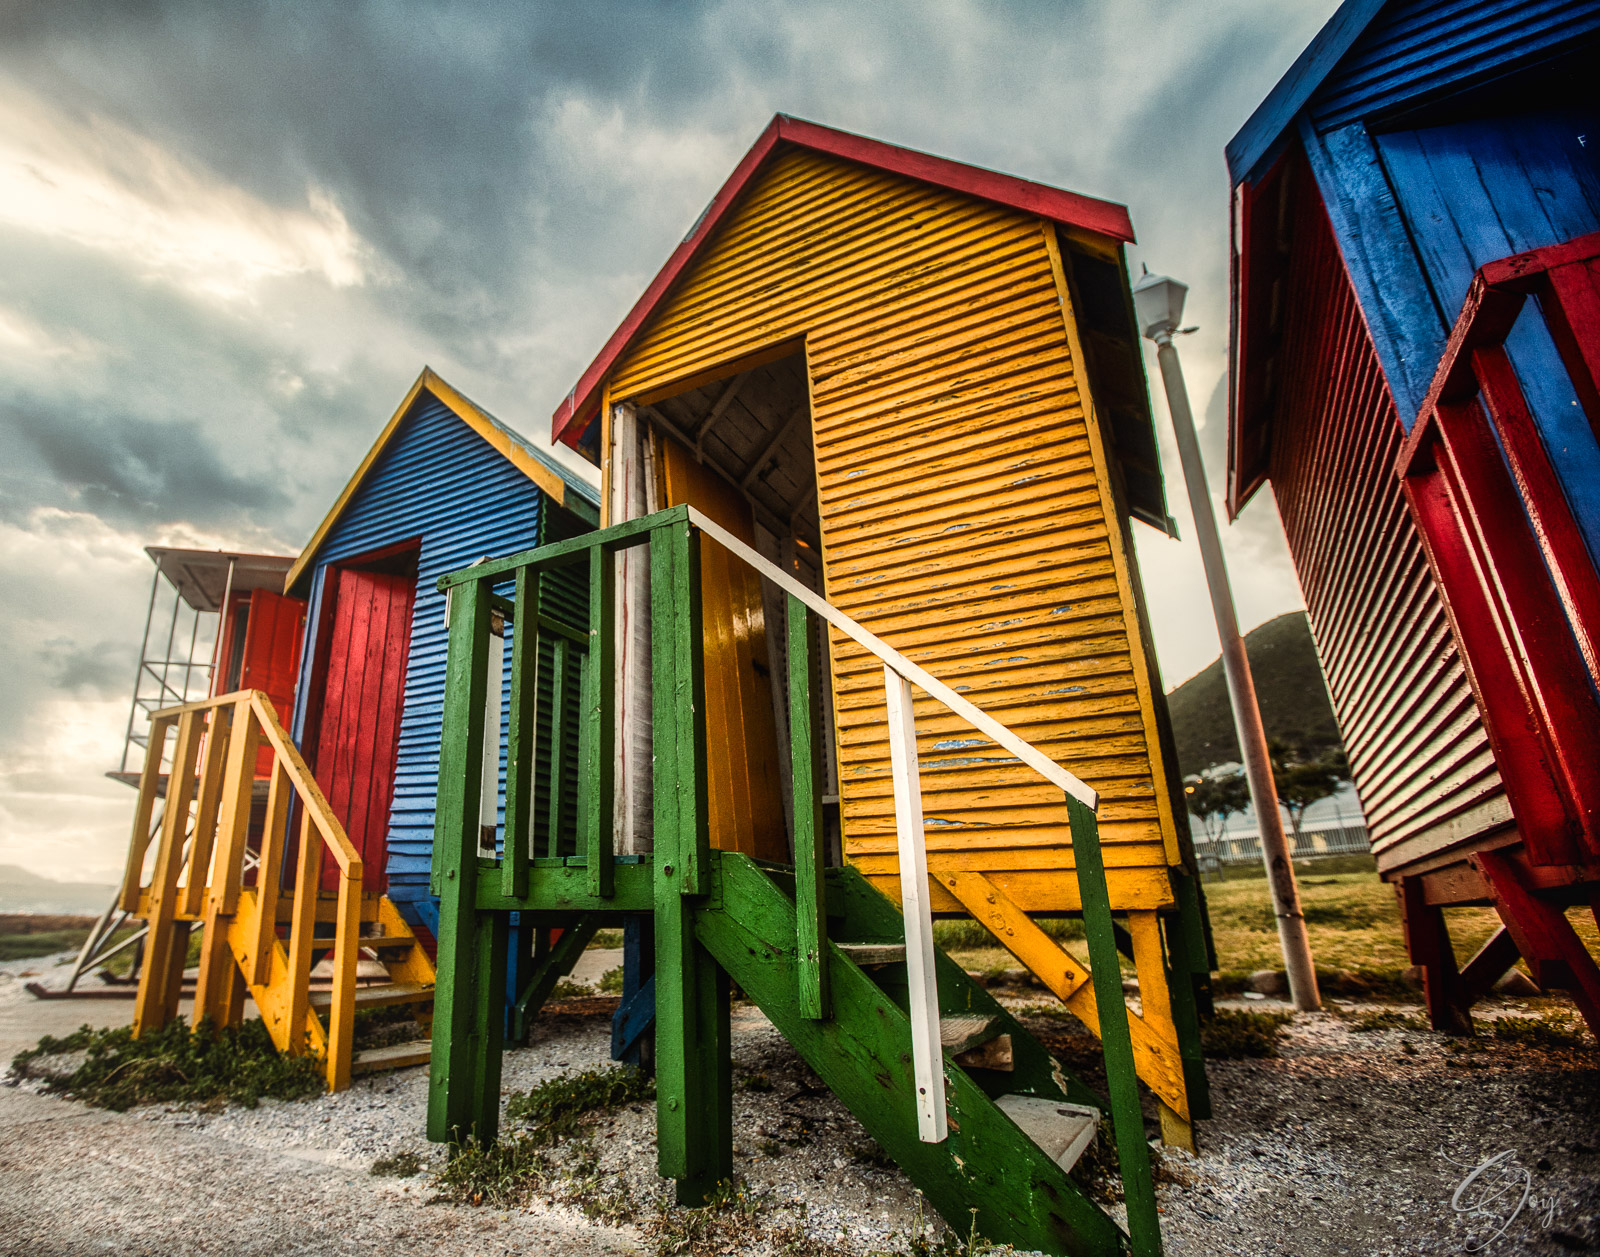 Colorful surf huts along St James beach